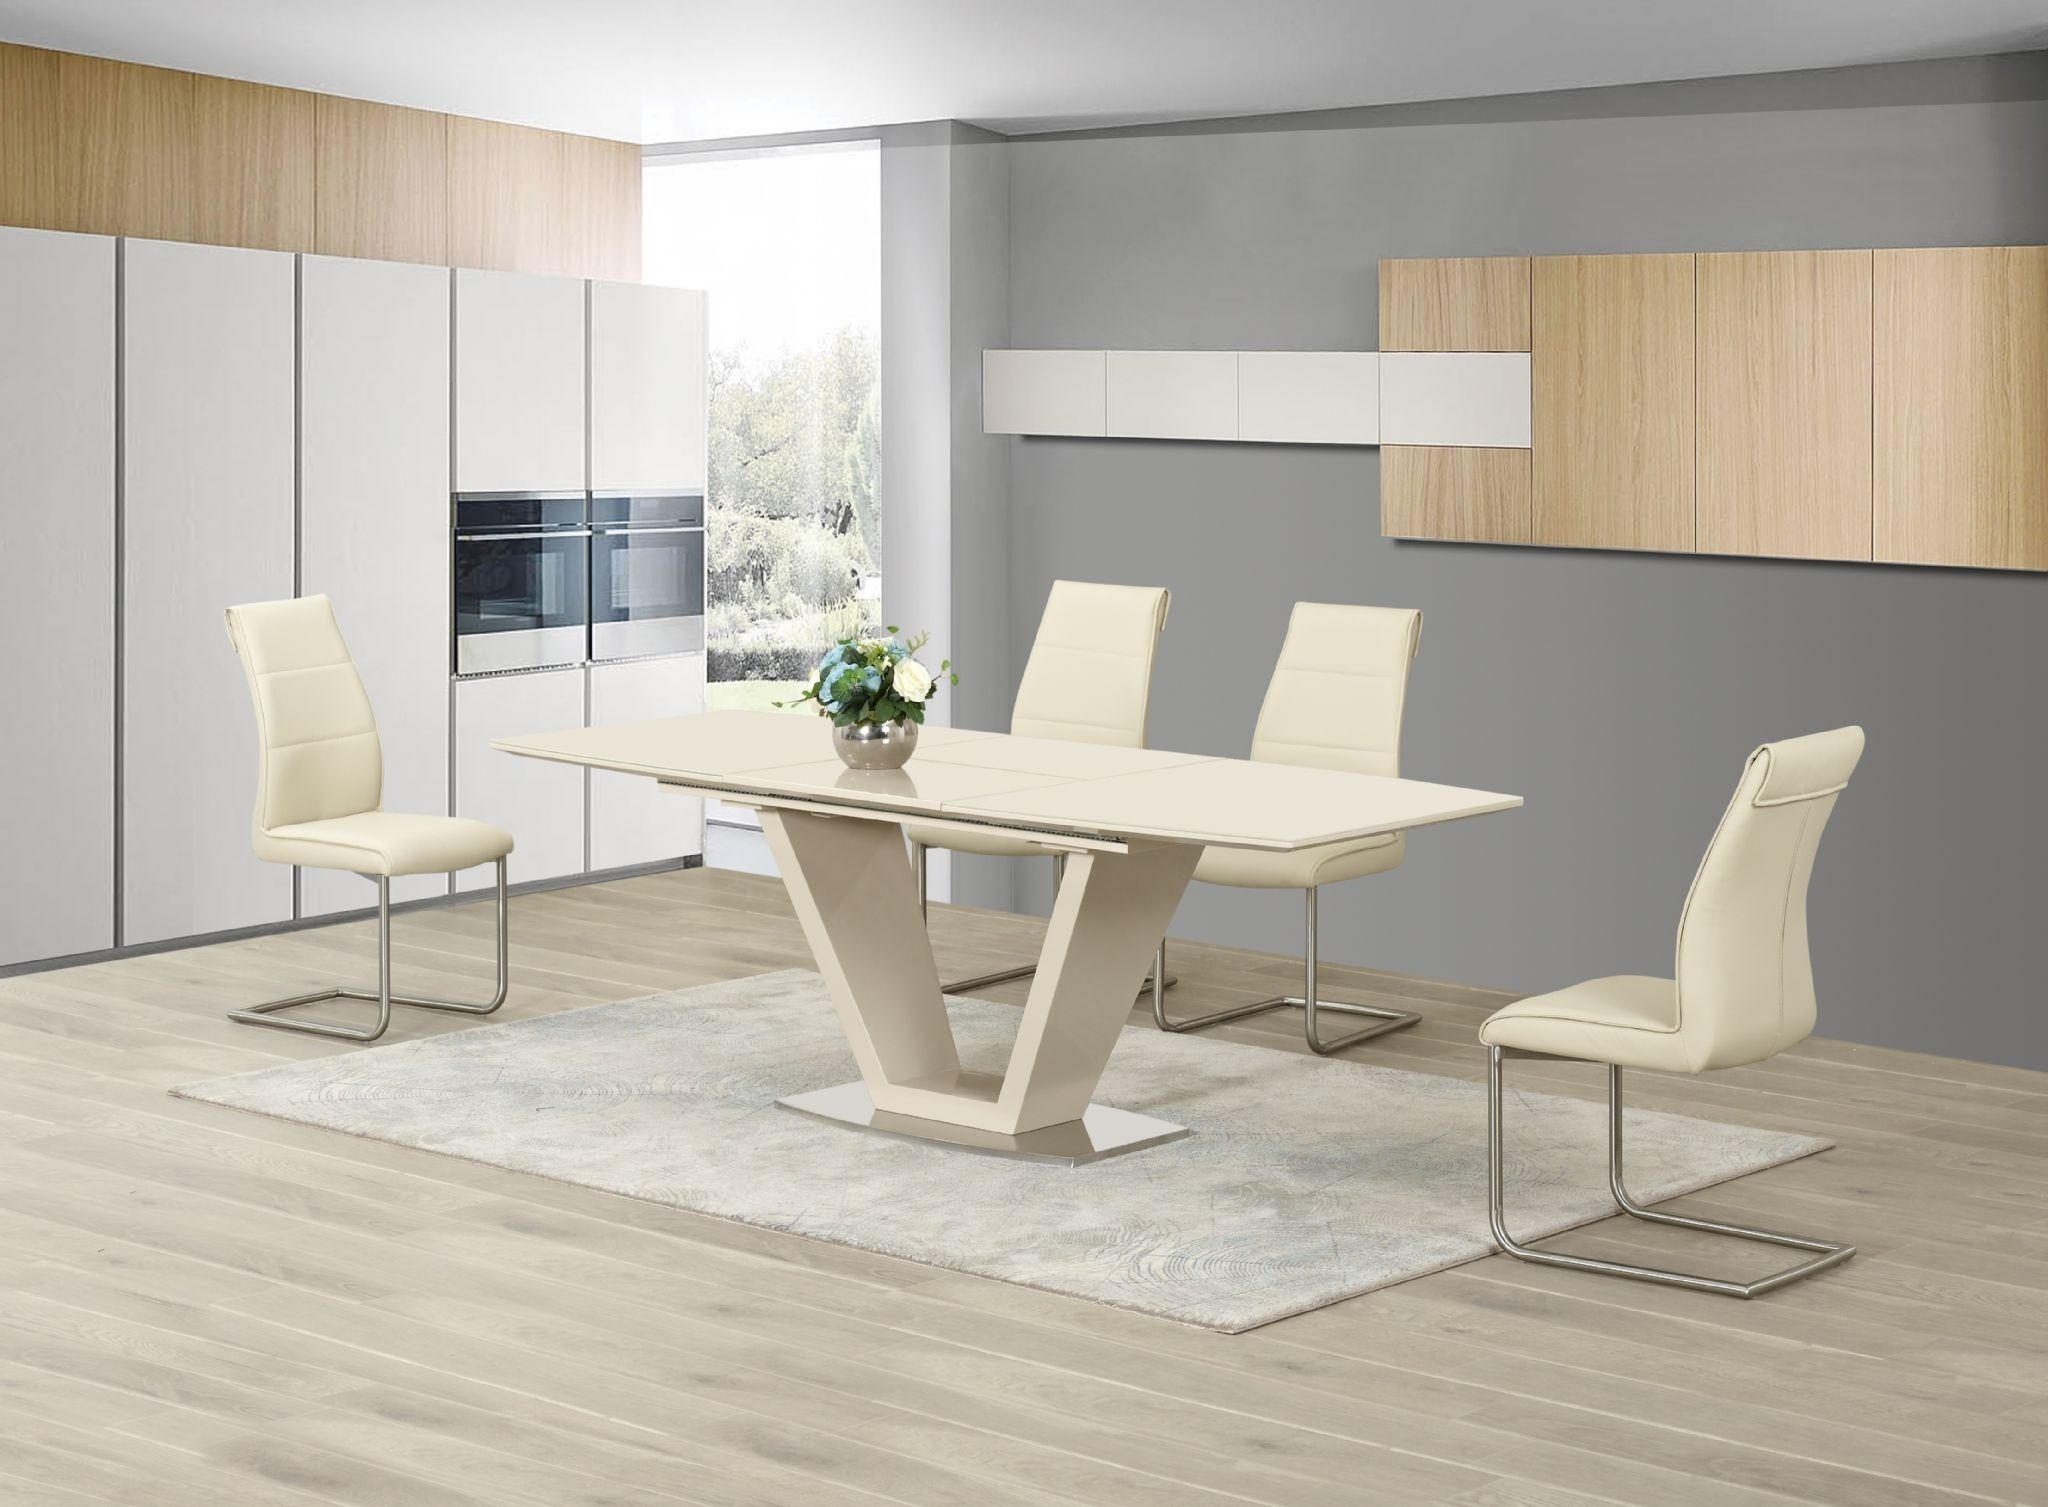 Latest Ga Loriga Cream Gloss Glass Designer Dining Table Extending 160 220 Within White Gloss And Glass Dining Tables (View 11 of 25)